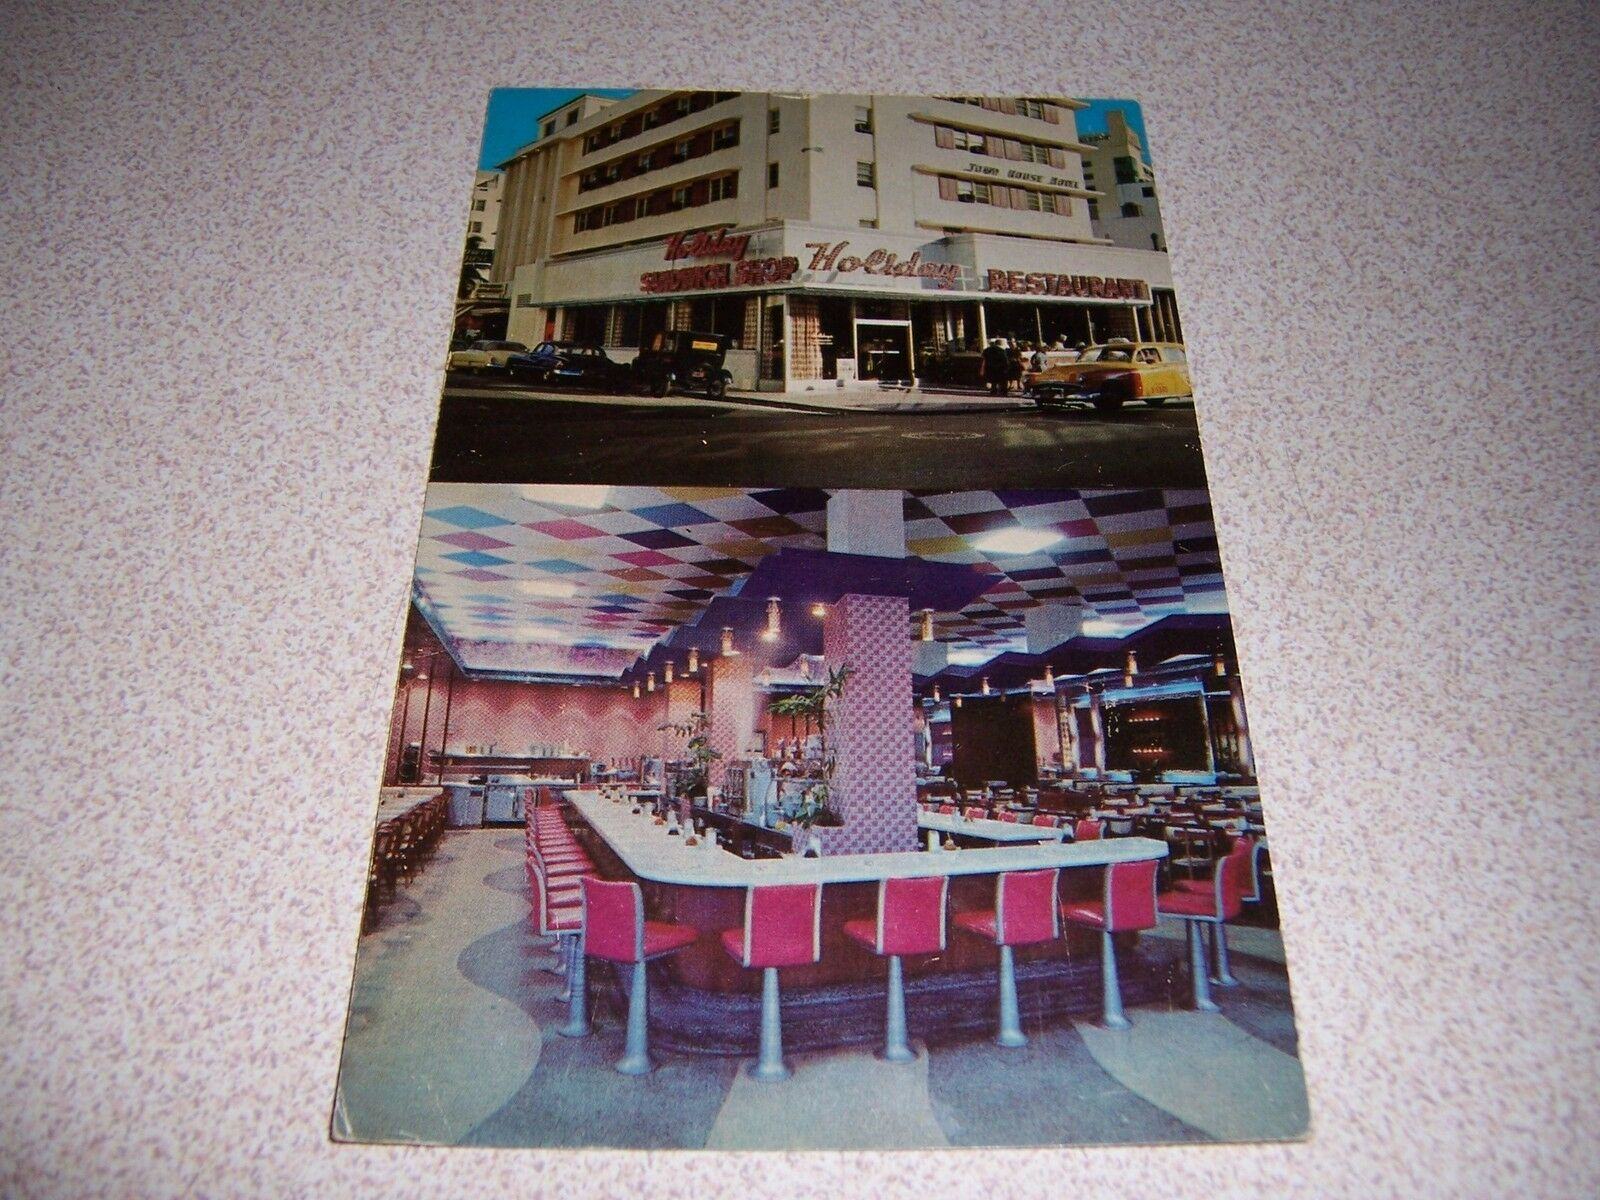 1930s Holiday Restaurant Collins Ave Miami Beach Florida Vtg Postcard 1 Of 1only Available